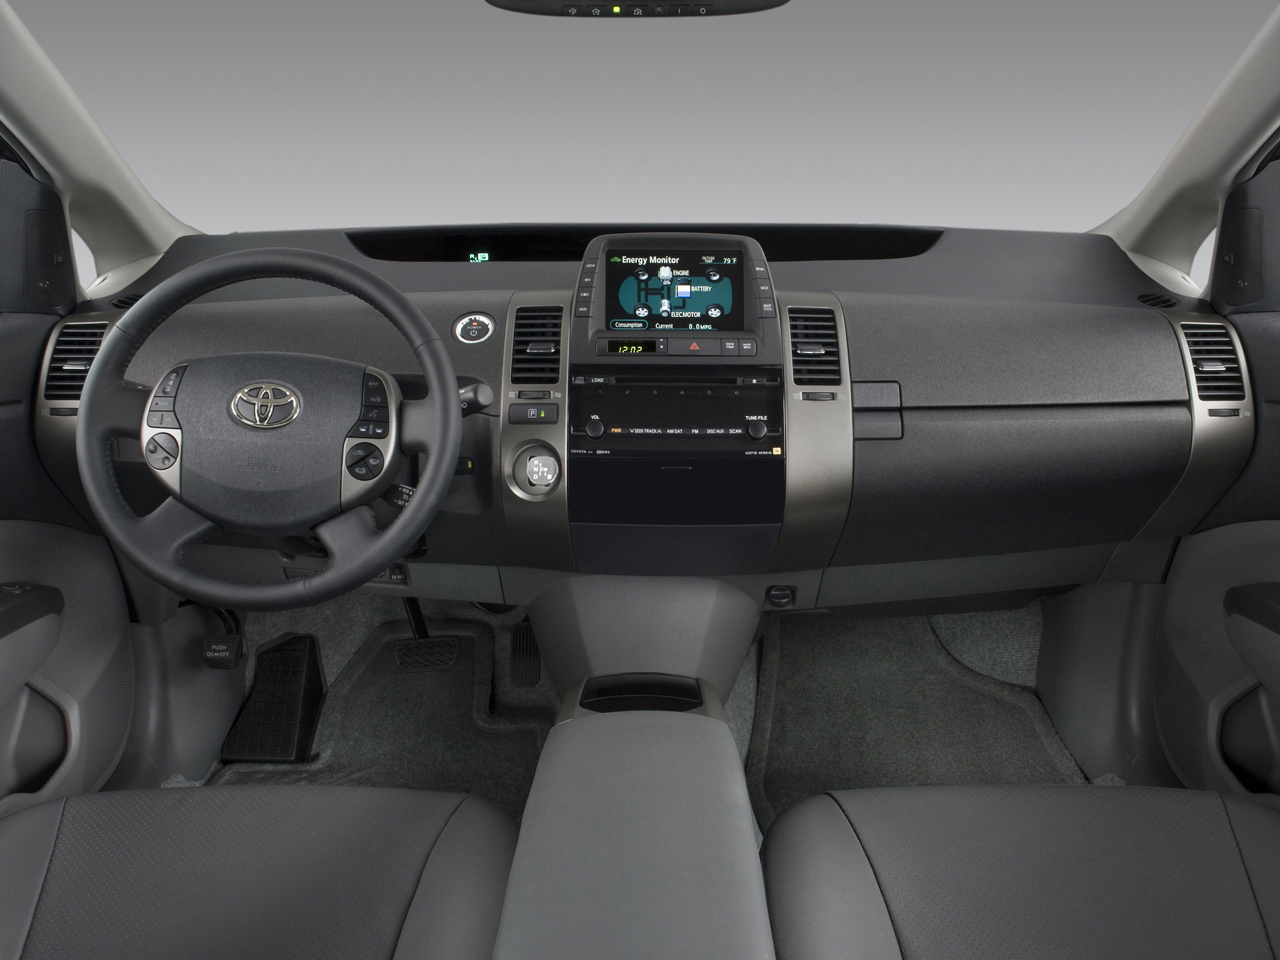 2009 Toyota Prius - Latest News, Features, and Auto Show Coverage